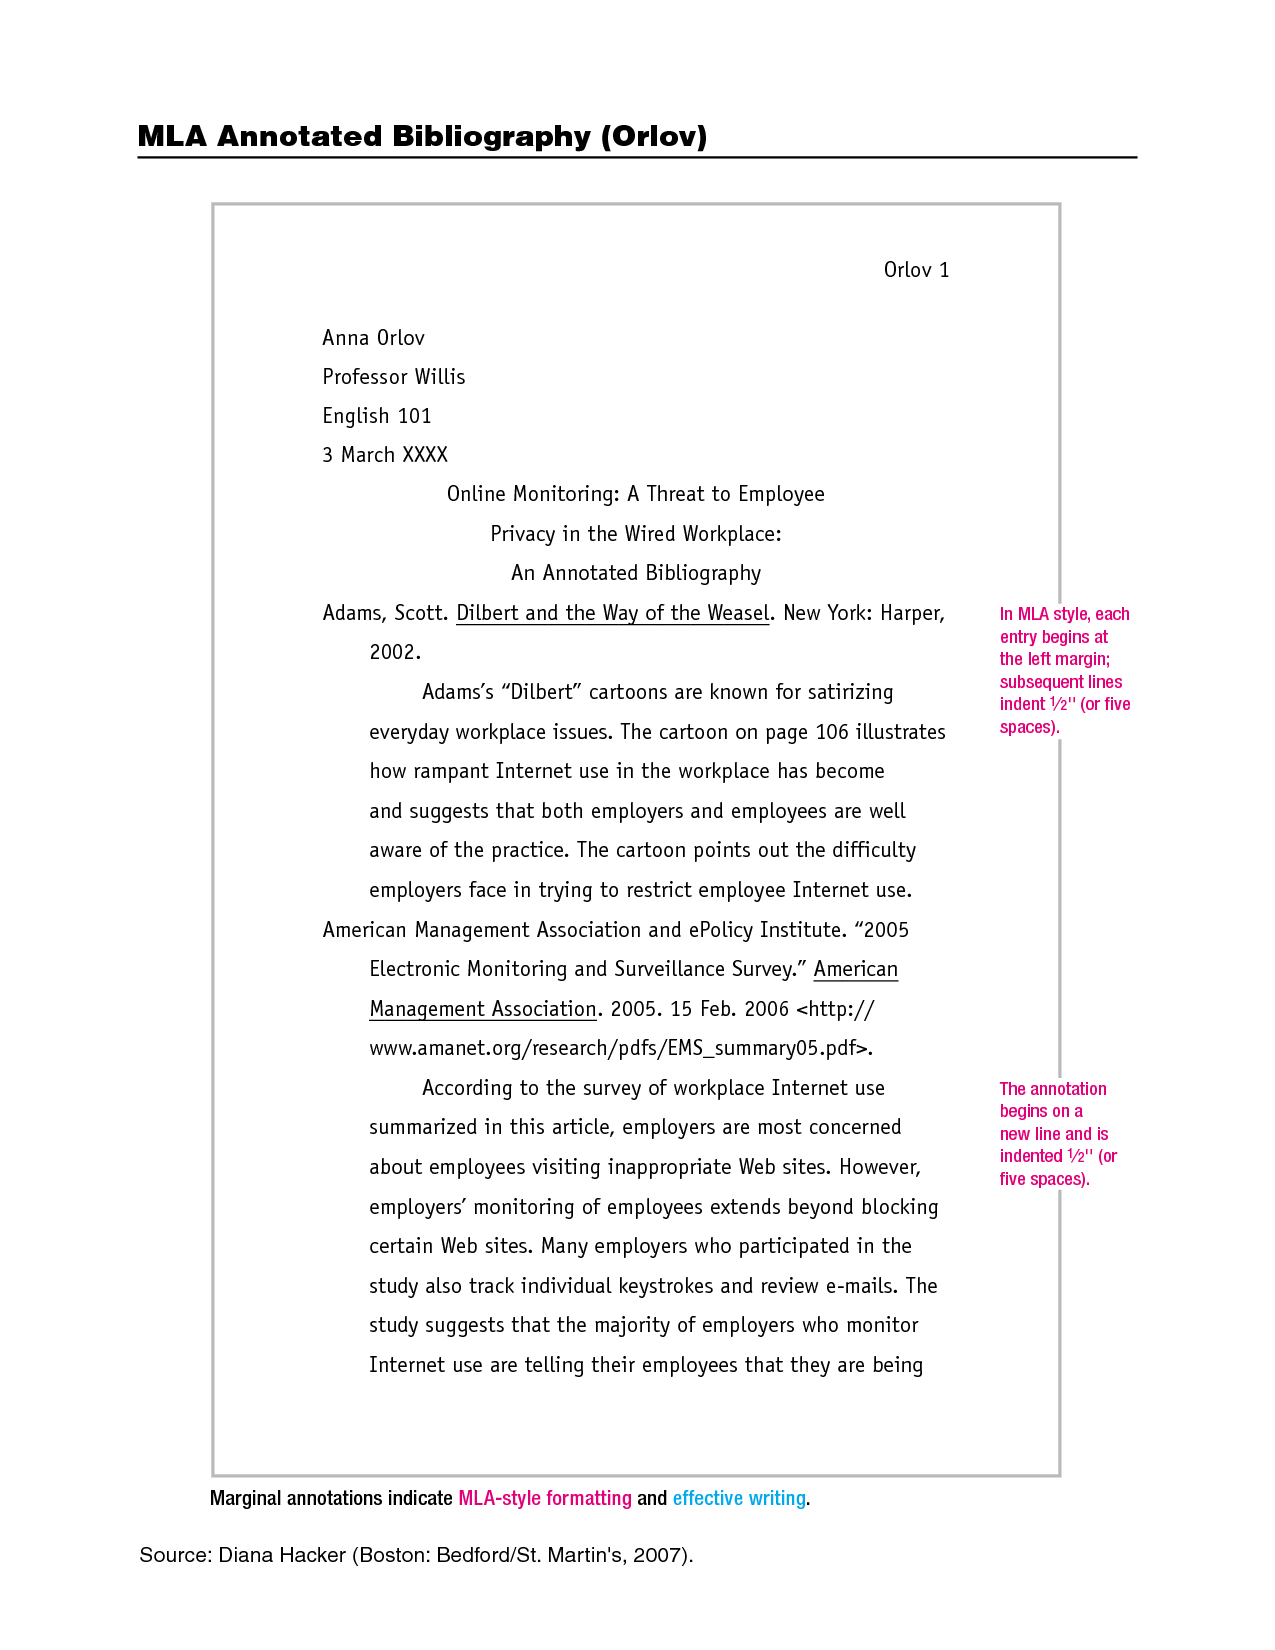 What is the popper formatting of project titles within the body of an academic essay?